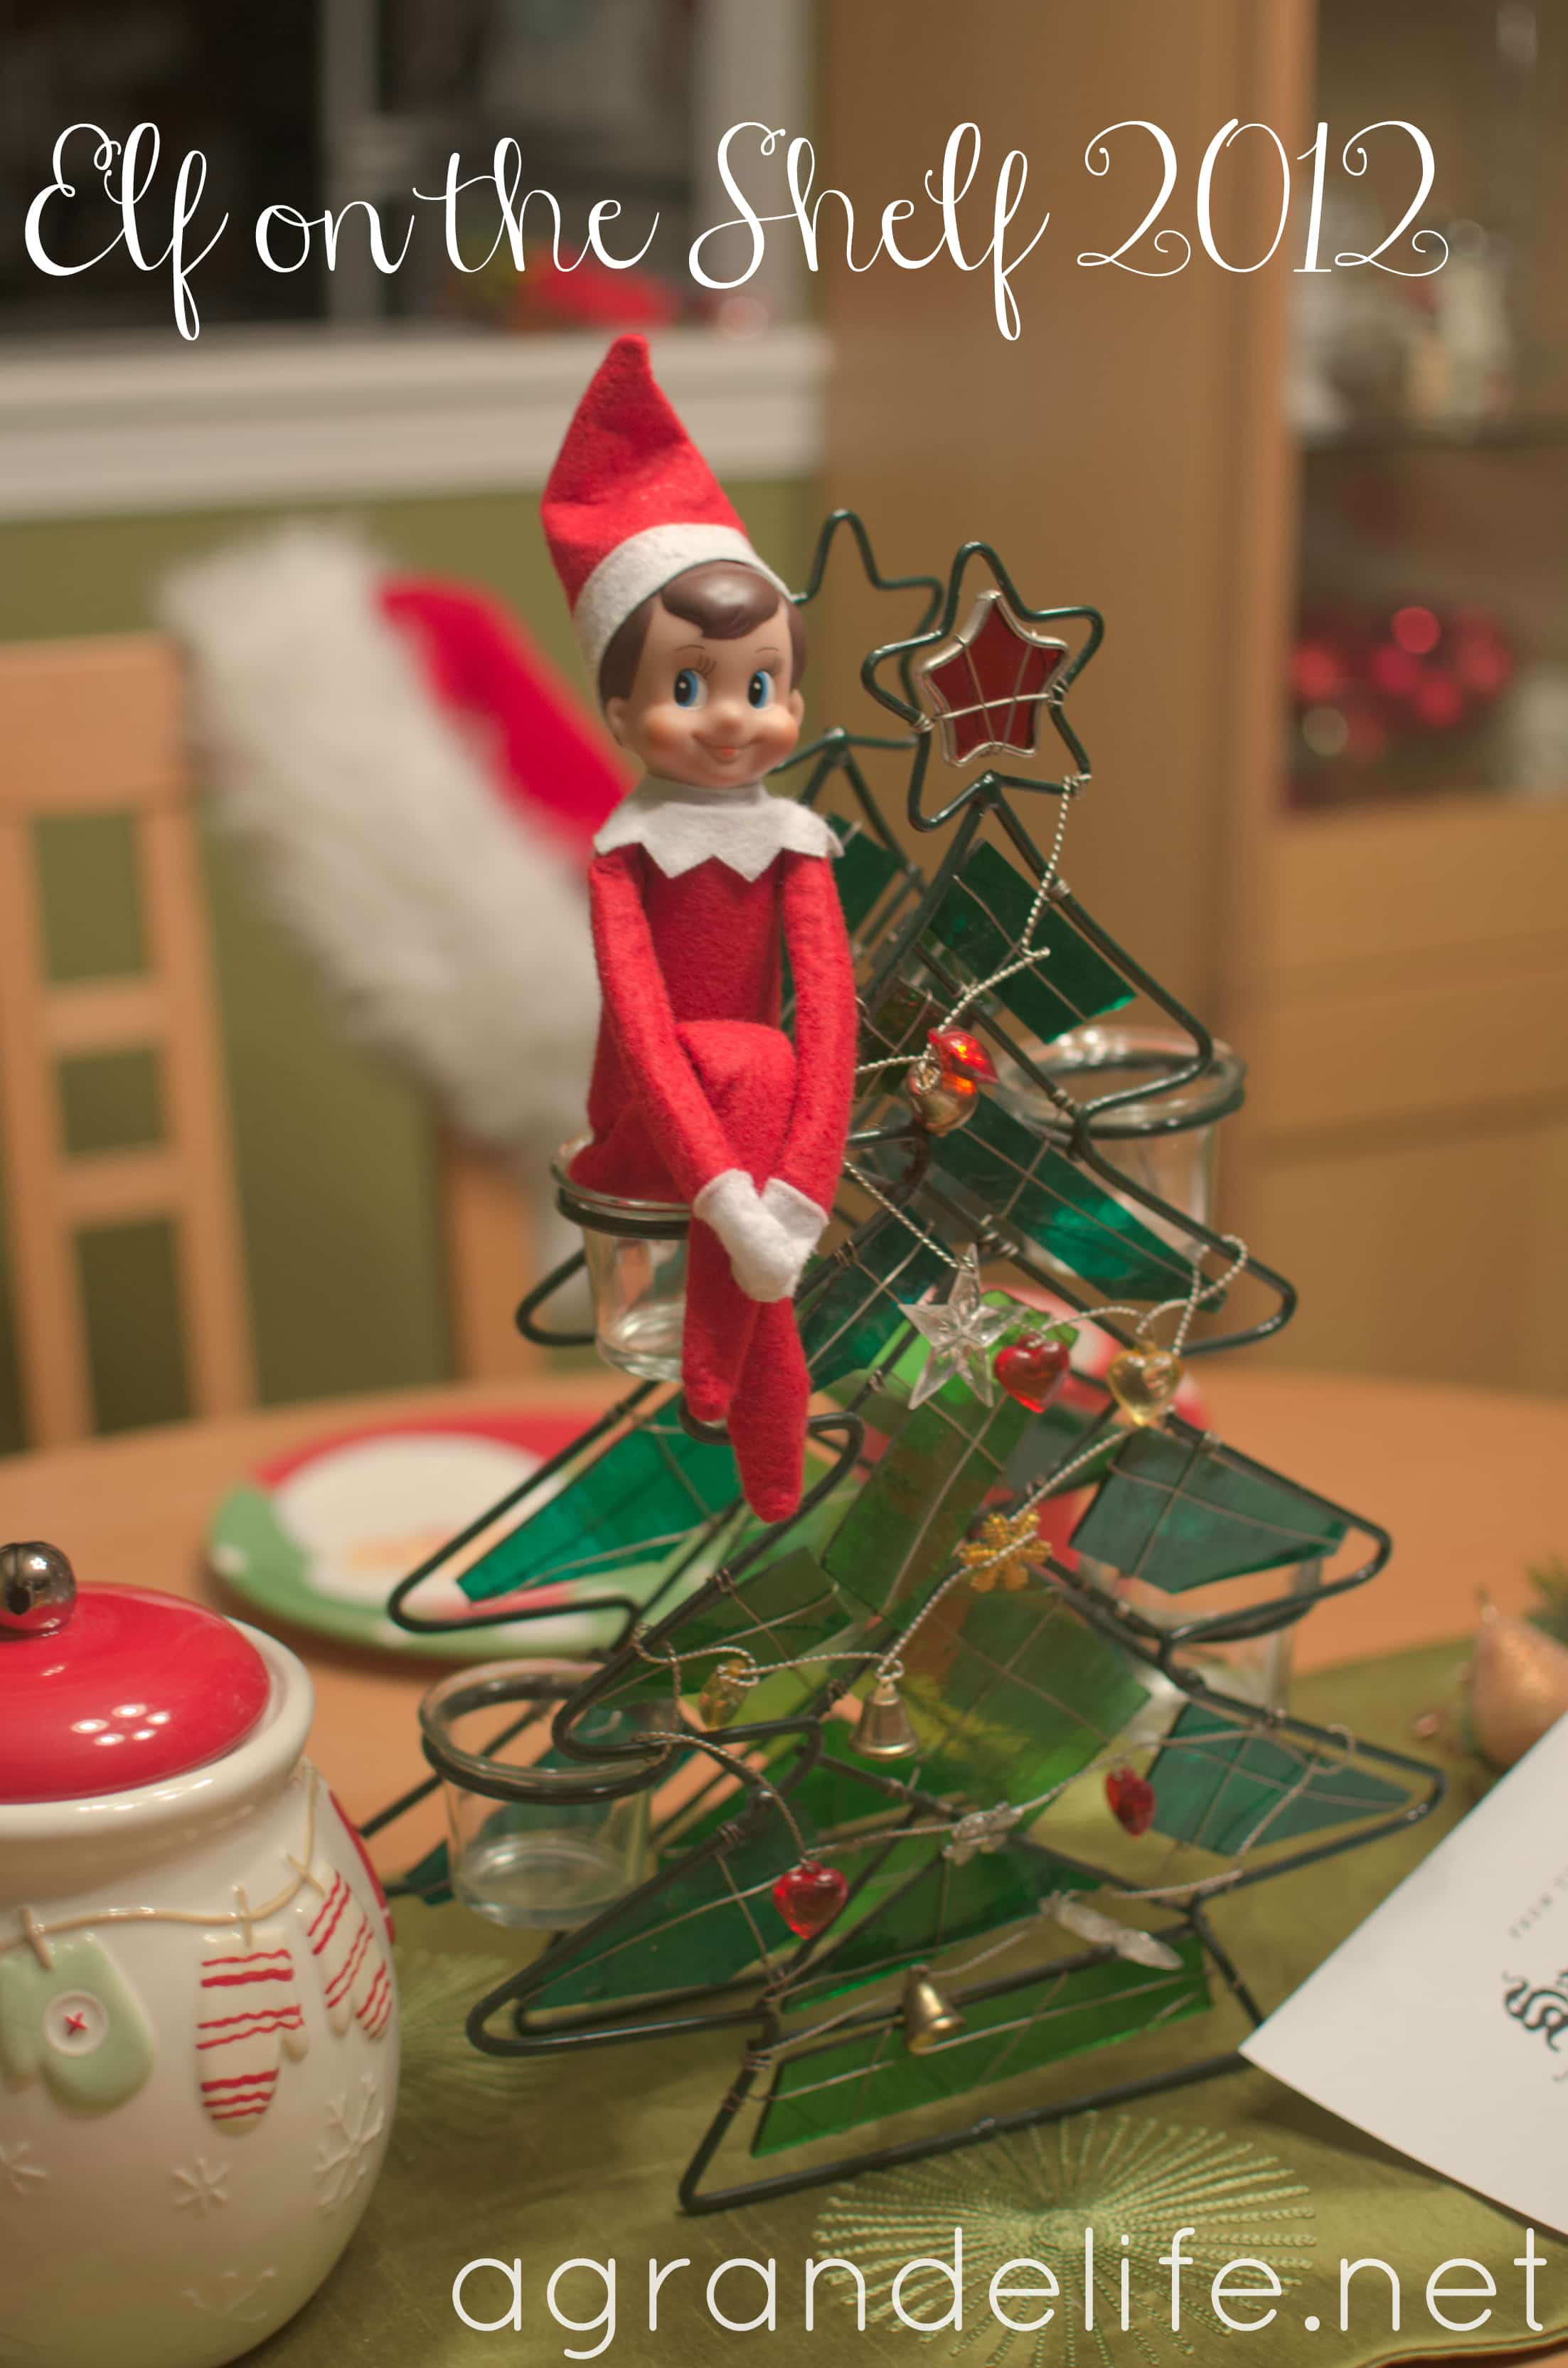 http://agrandelife.net/wp-content/uploads/2012/11/elf-on-the-shelf-2.jpg